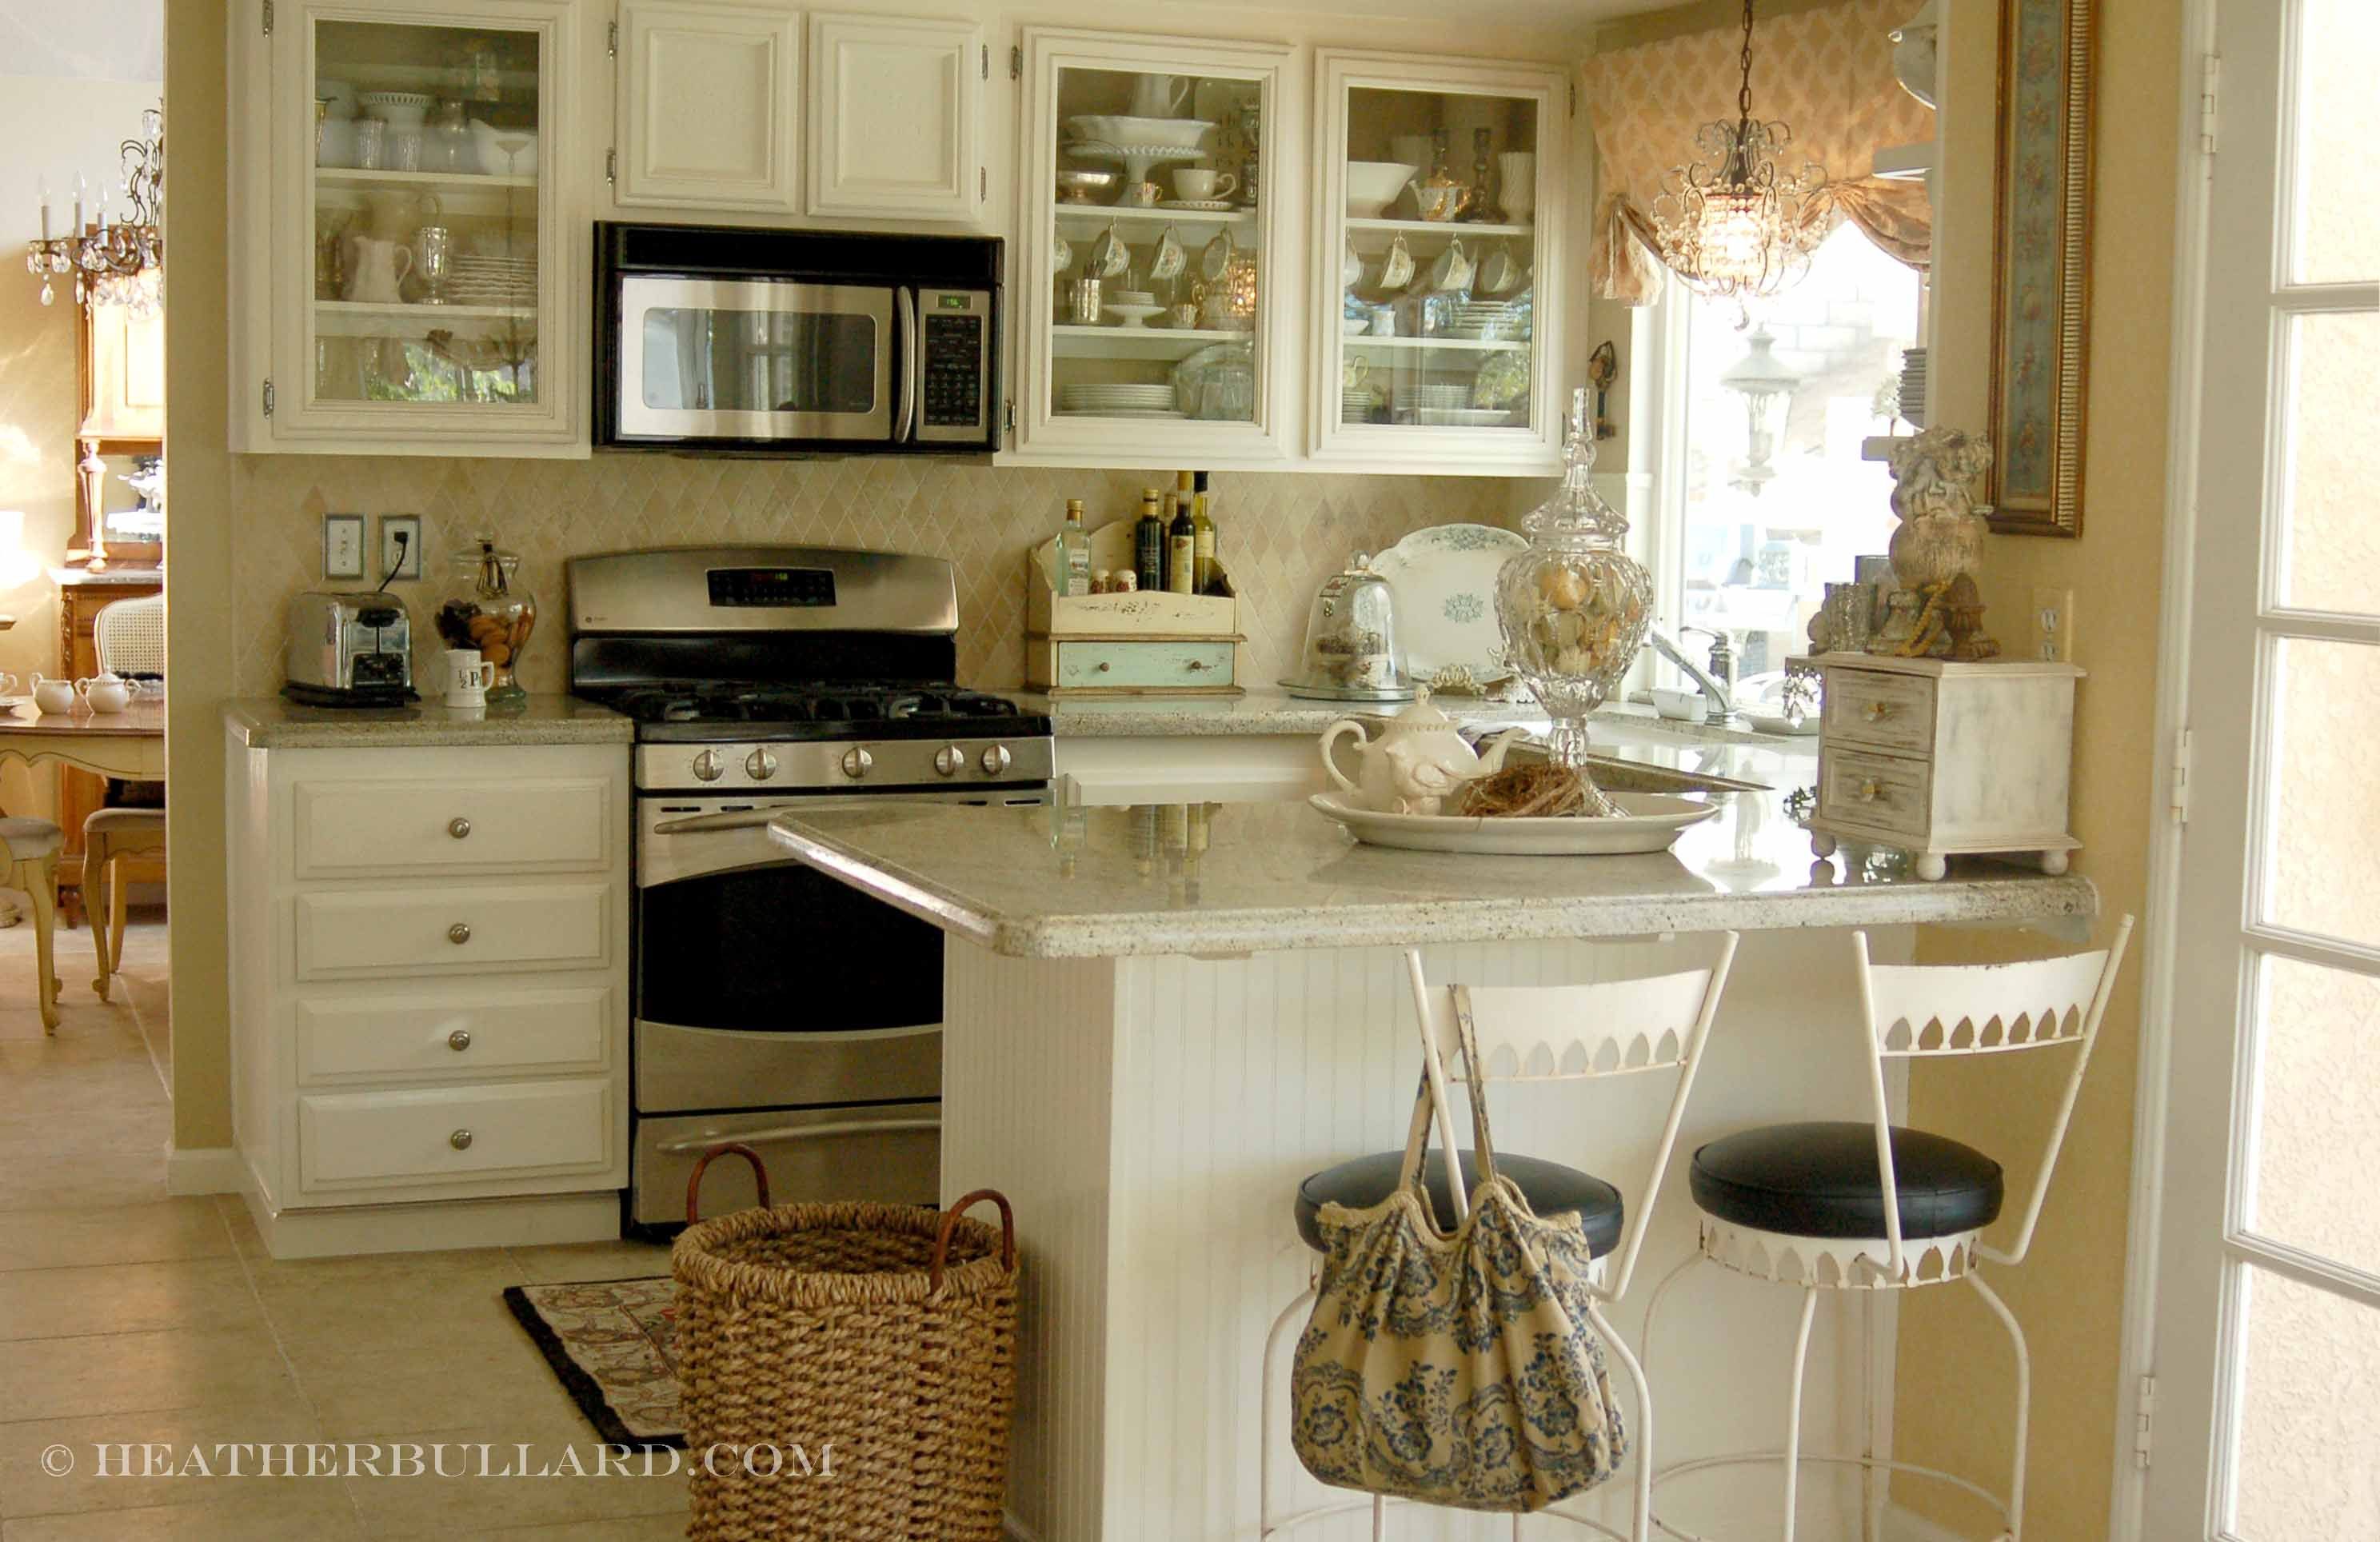 Small kitchens idaho home ideas pinterest french country